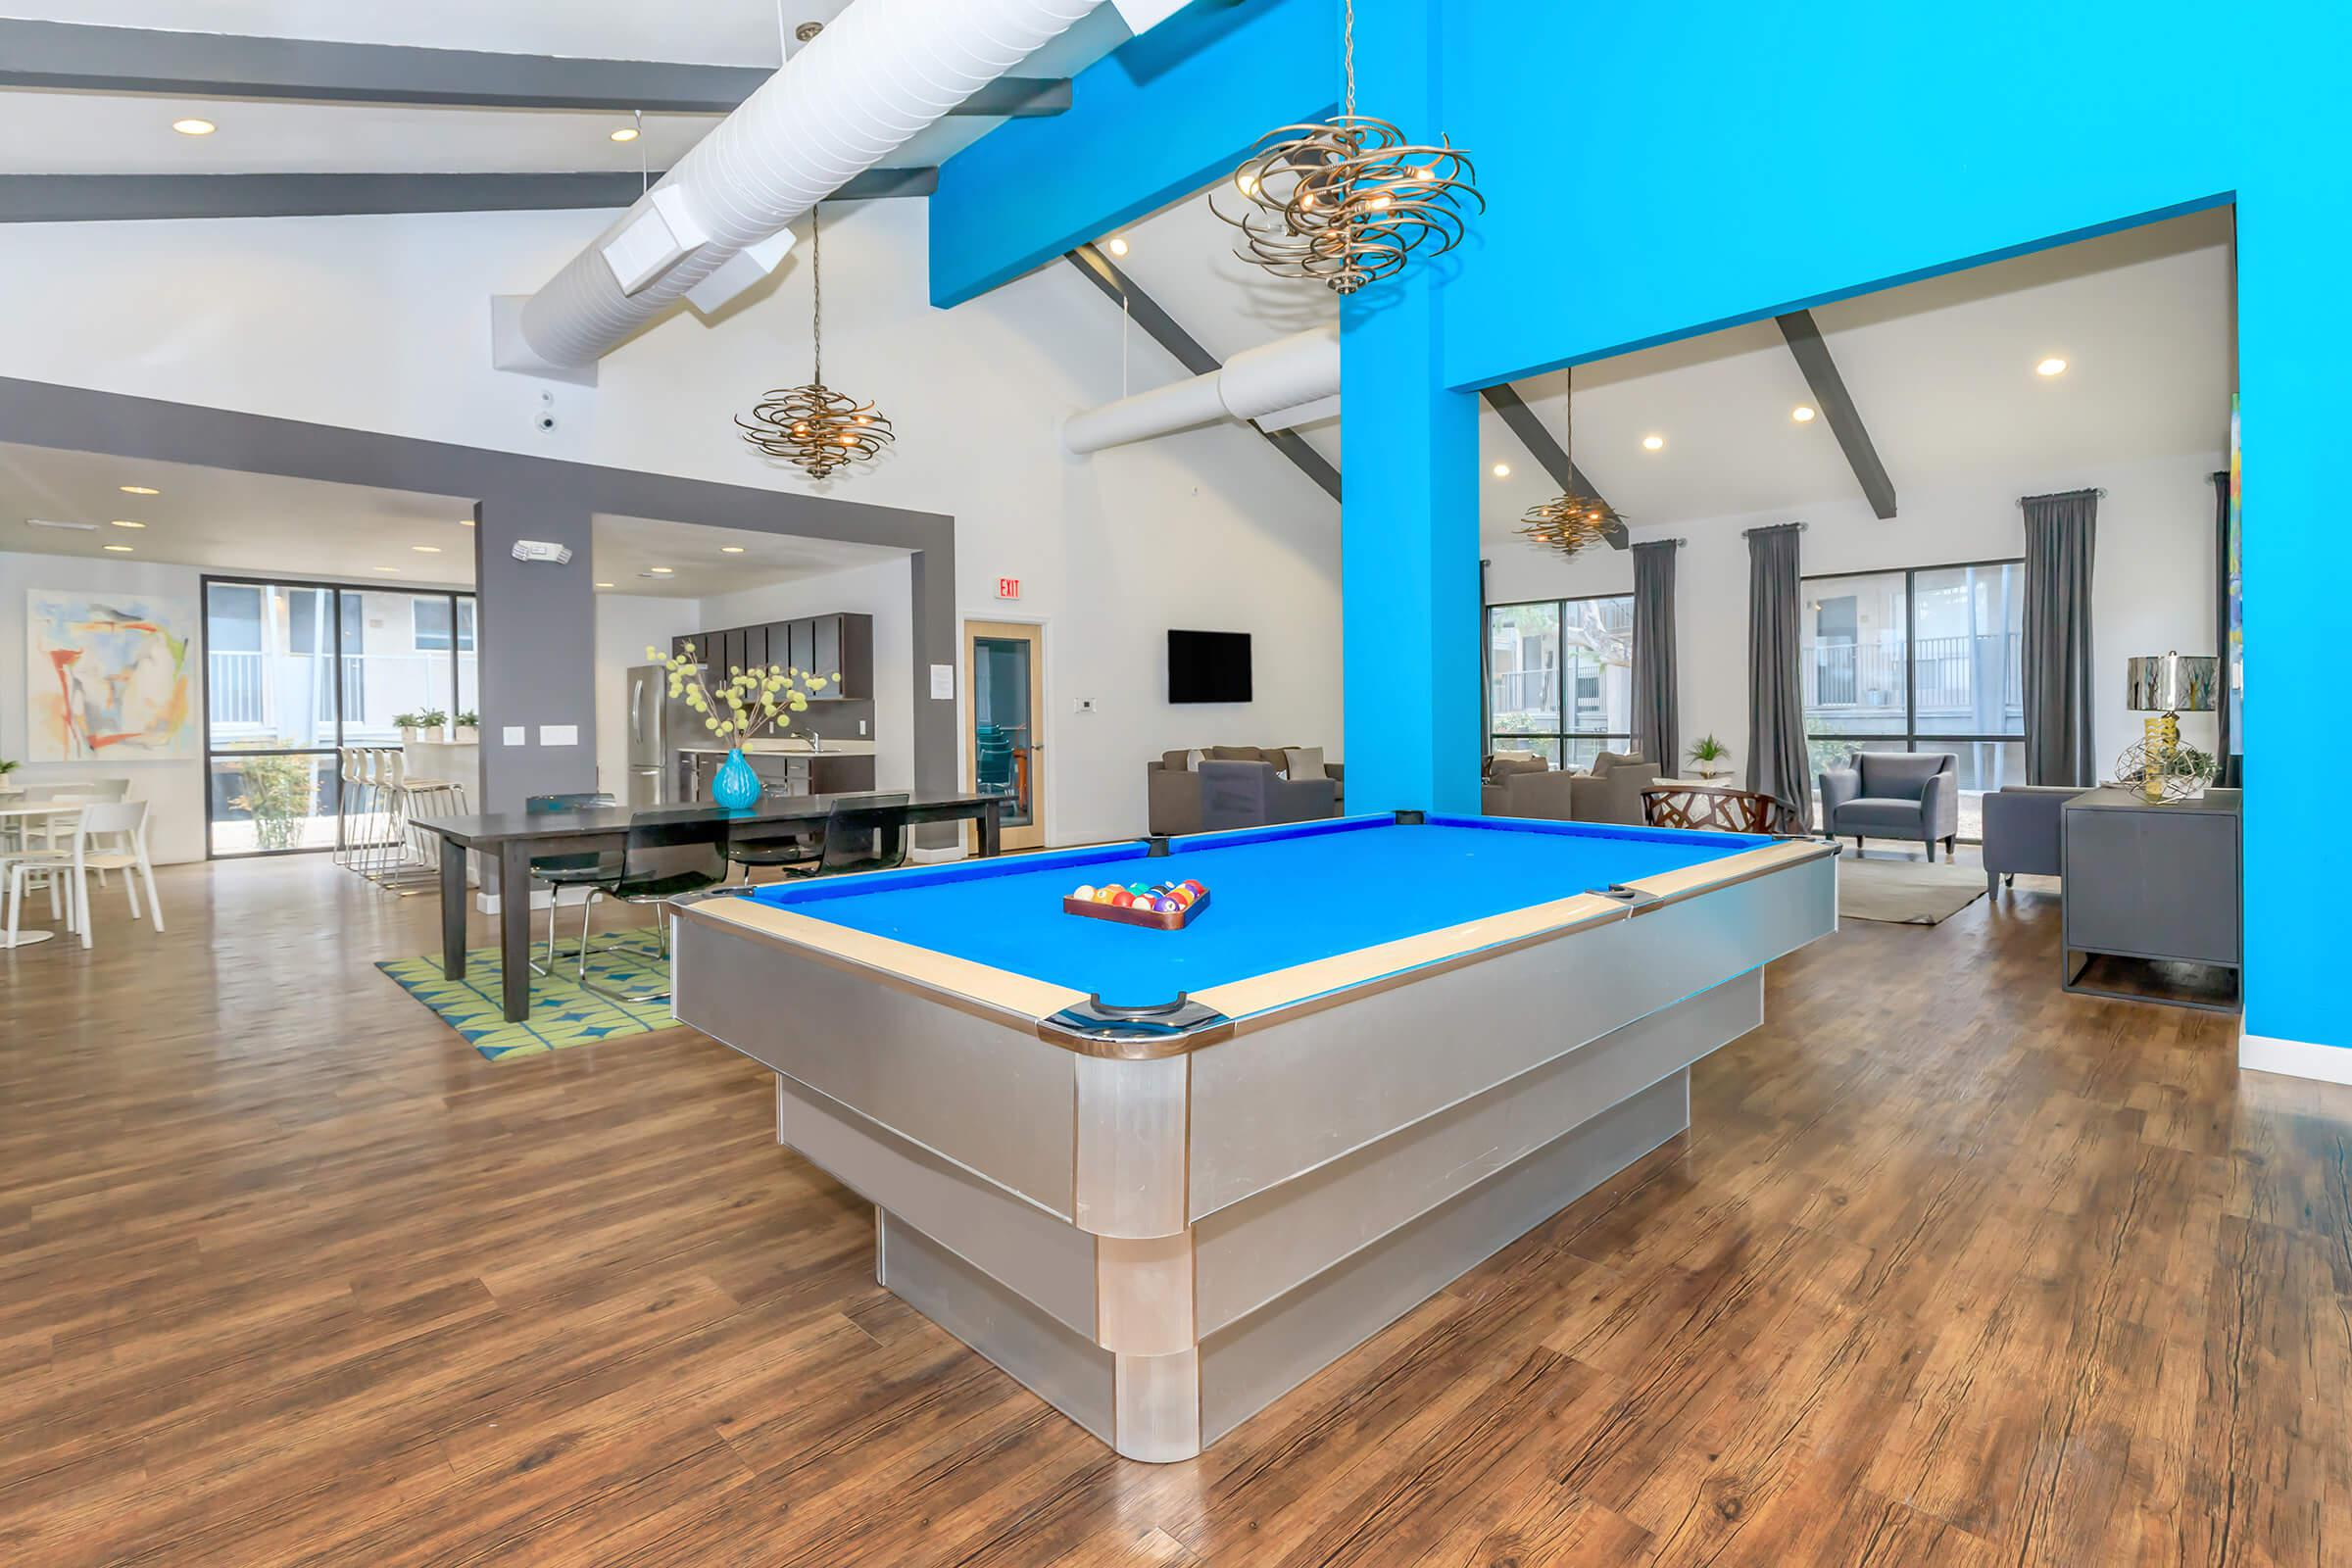 A GAME OF BILLIARDS ANYONE?